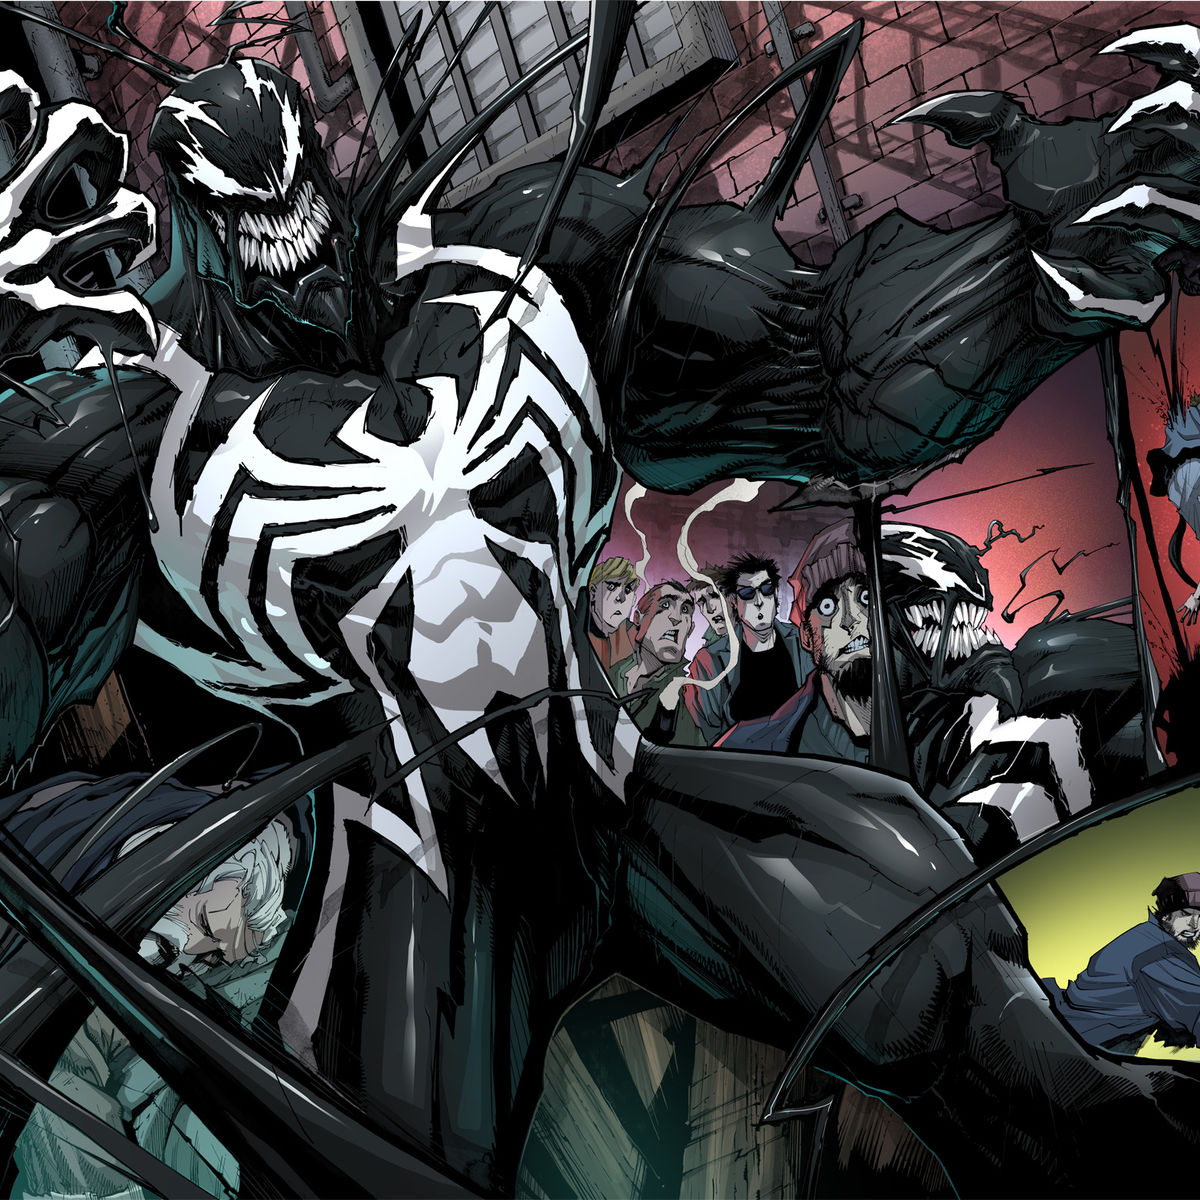 First Look At Marvel Comics Relaunched Venom But Whos Behind The Avengers Mask Batman